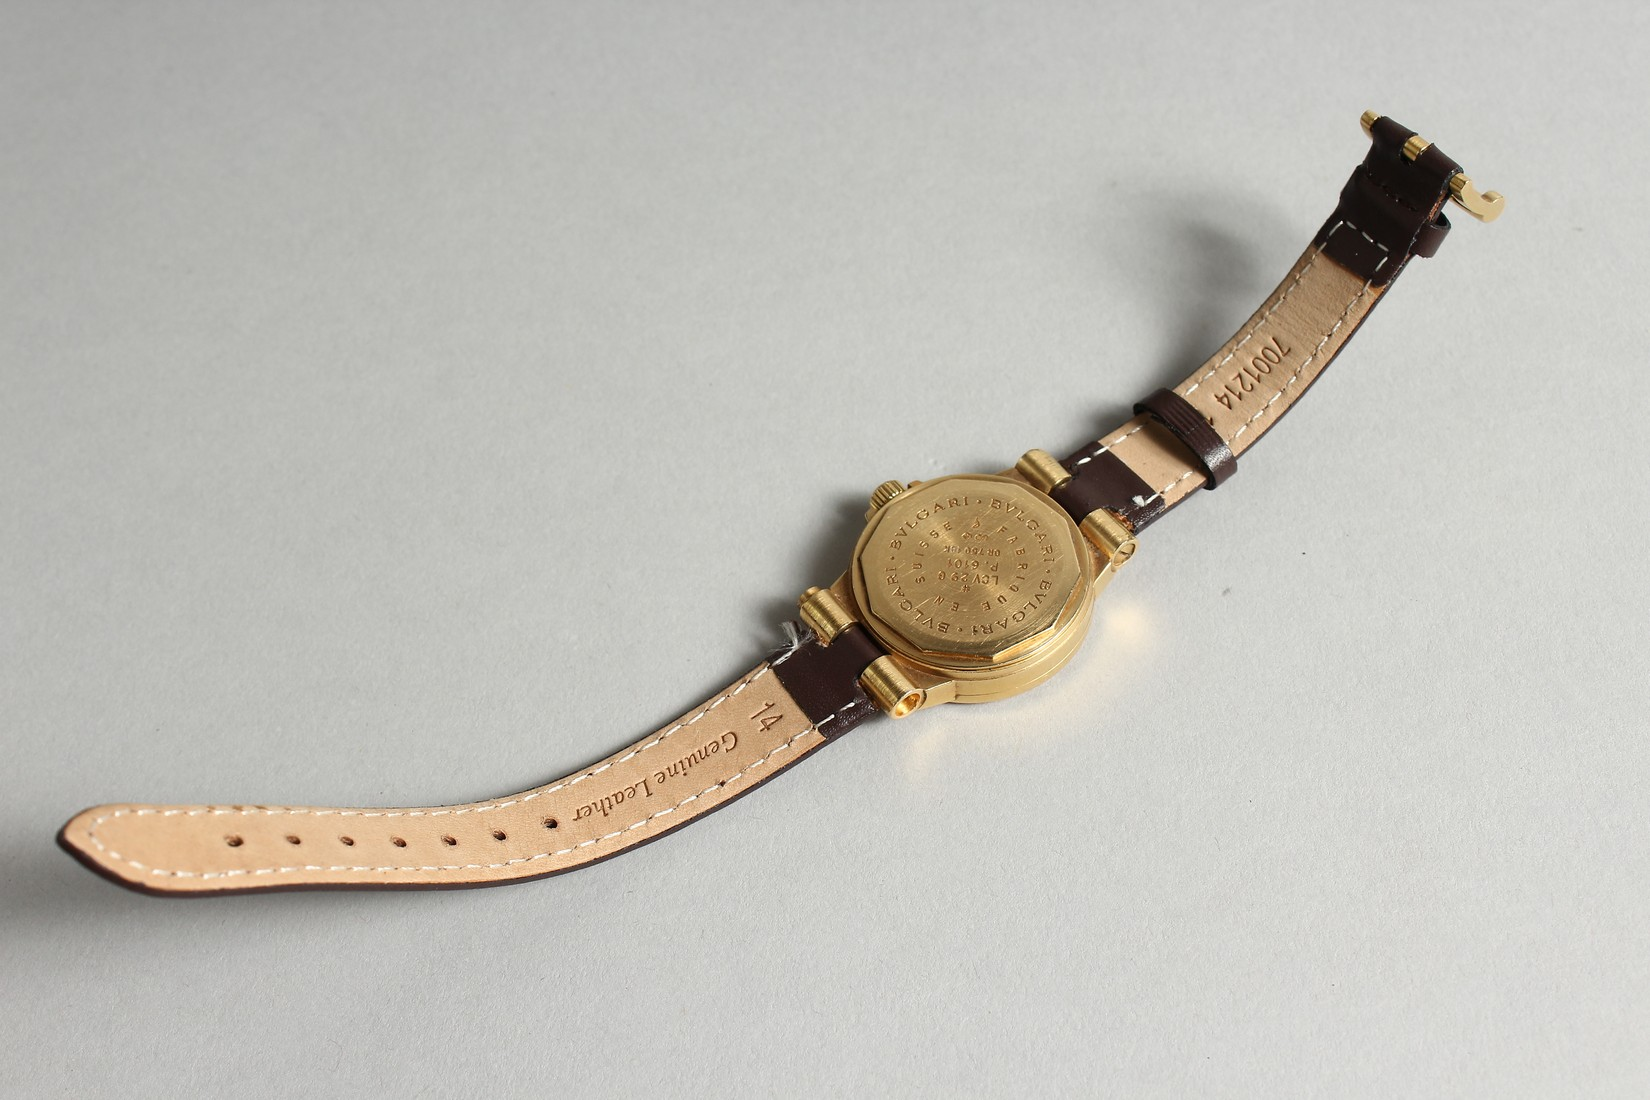 AN 18CT. GOLD BULGARI WRIST WATCH with leather strap, in original box. - Image 4 of 10